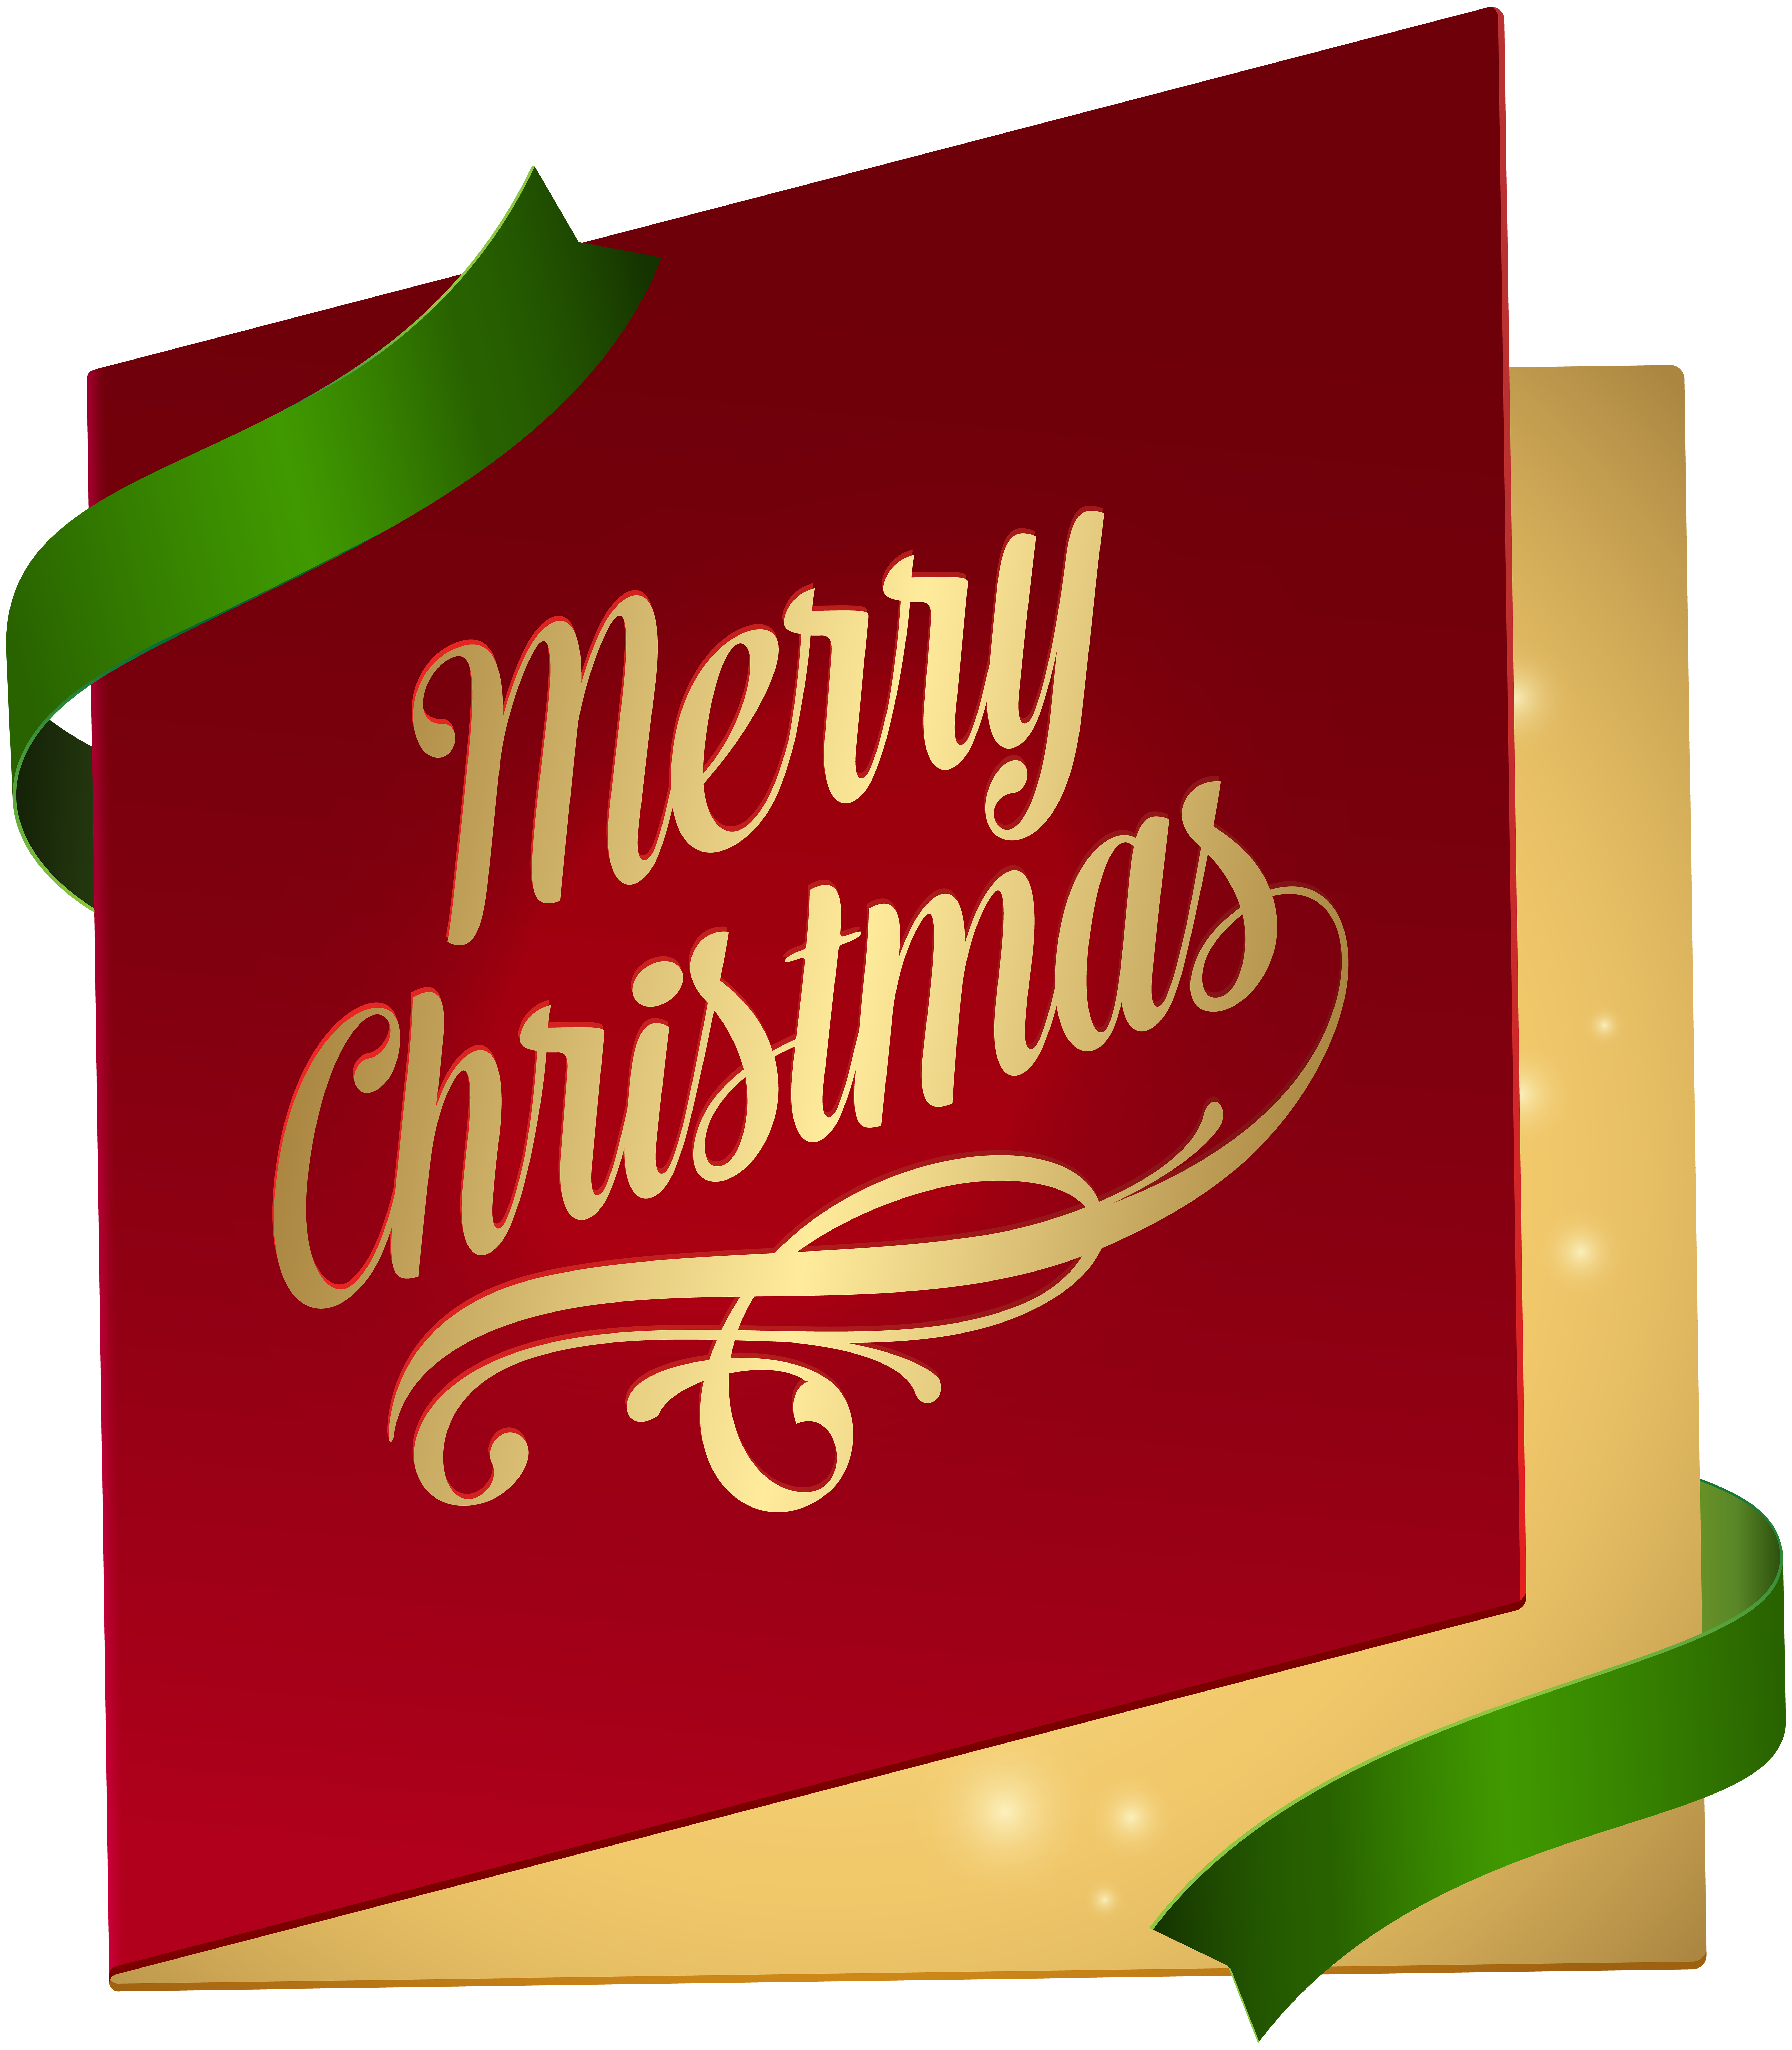 Christmas cards clipart image freeuse download 28+ Collection of Christmas Card Clipart   High quality, free ... image freeuse download